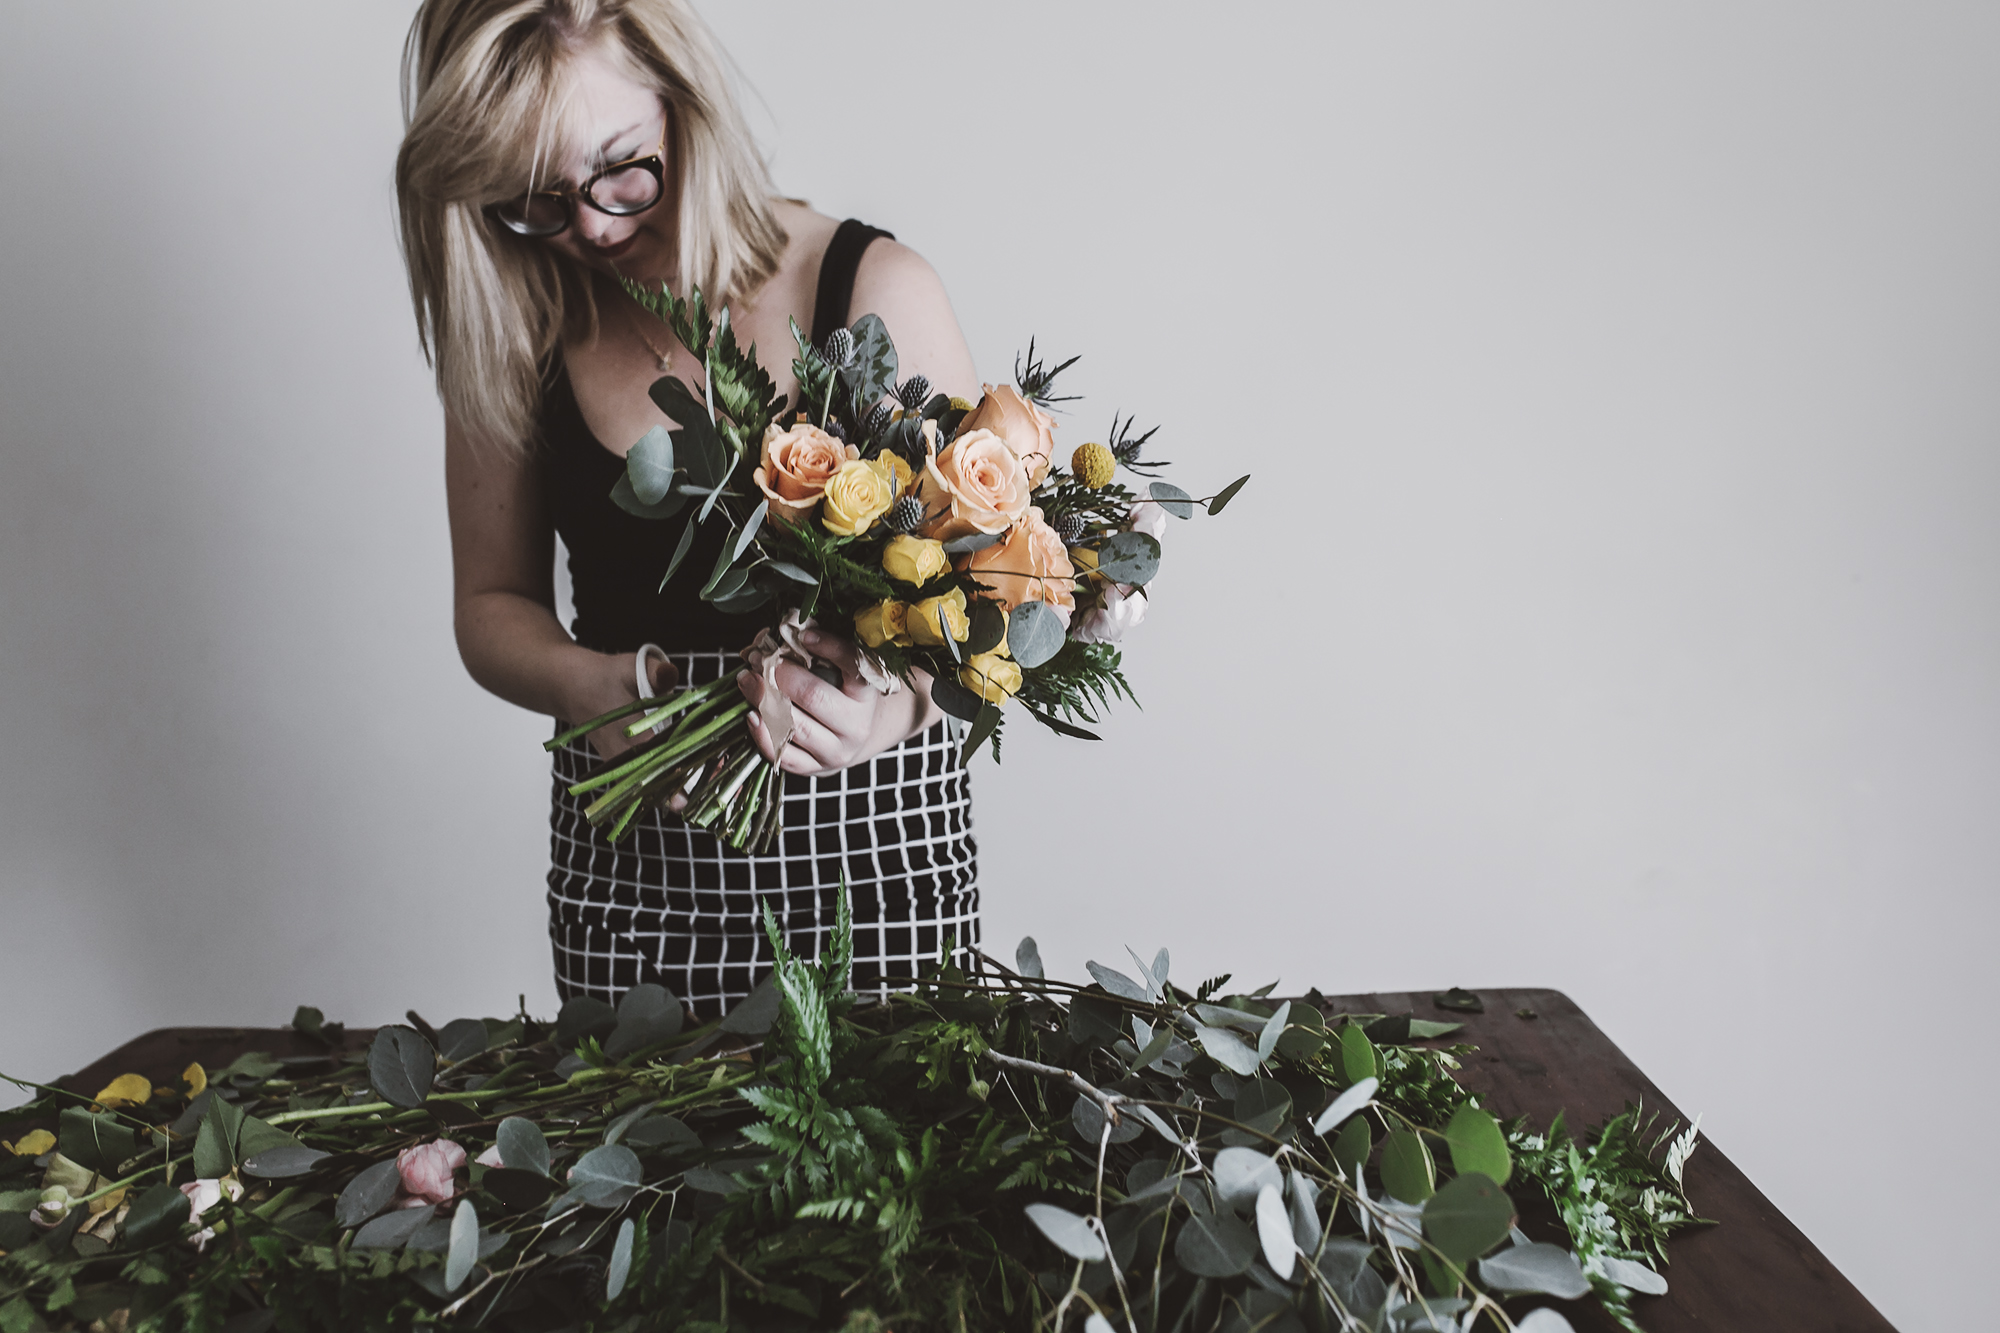 Form Floral - Behind the Scenes